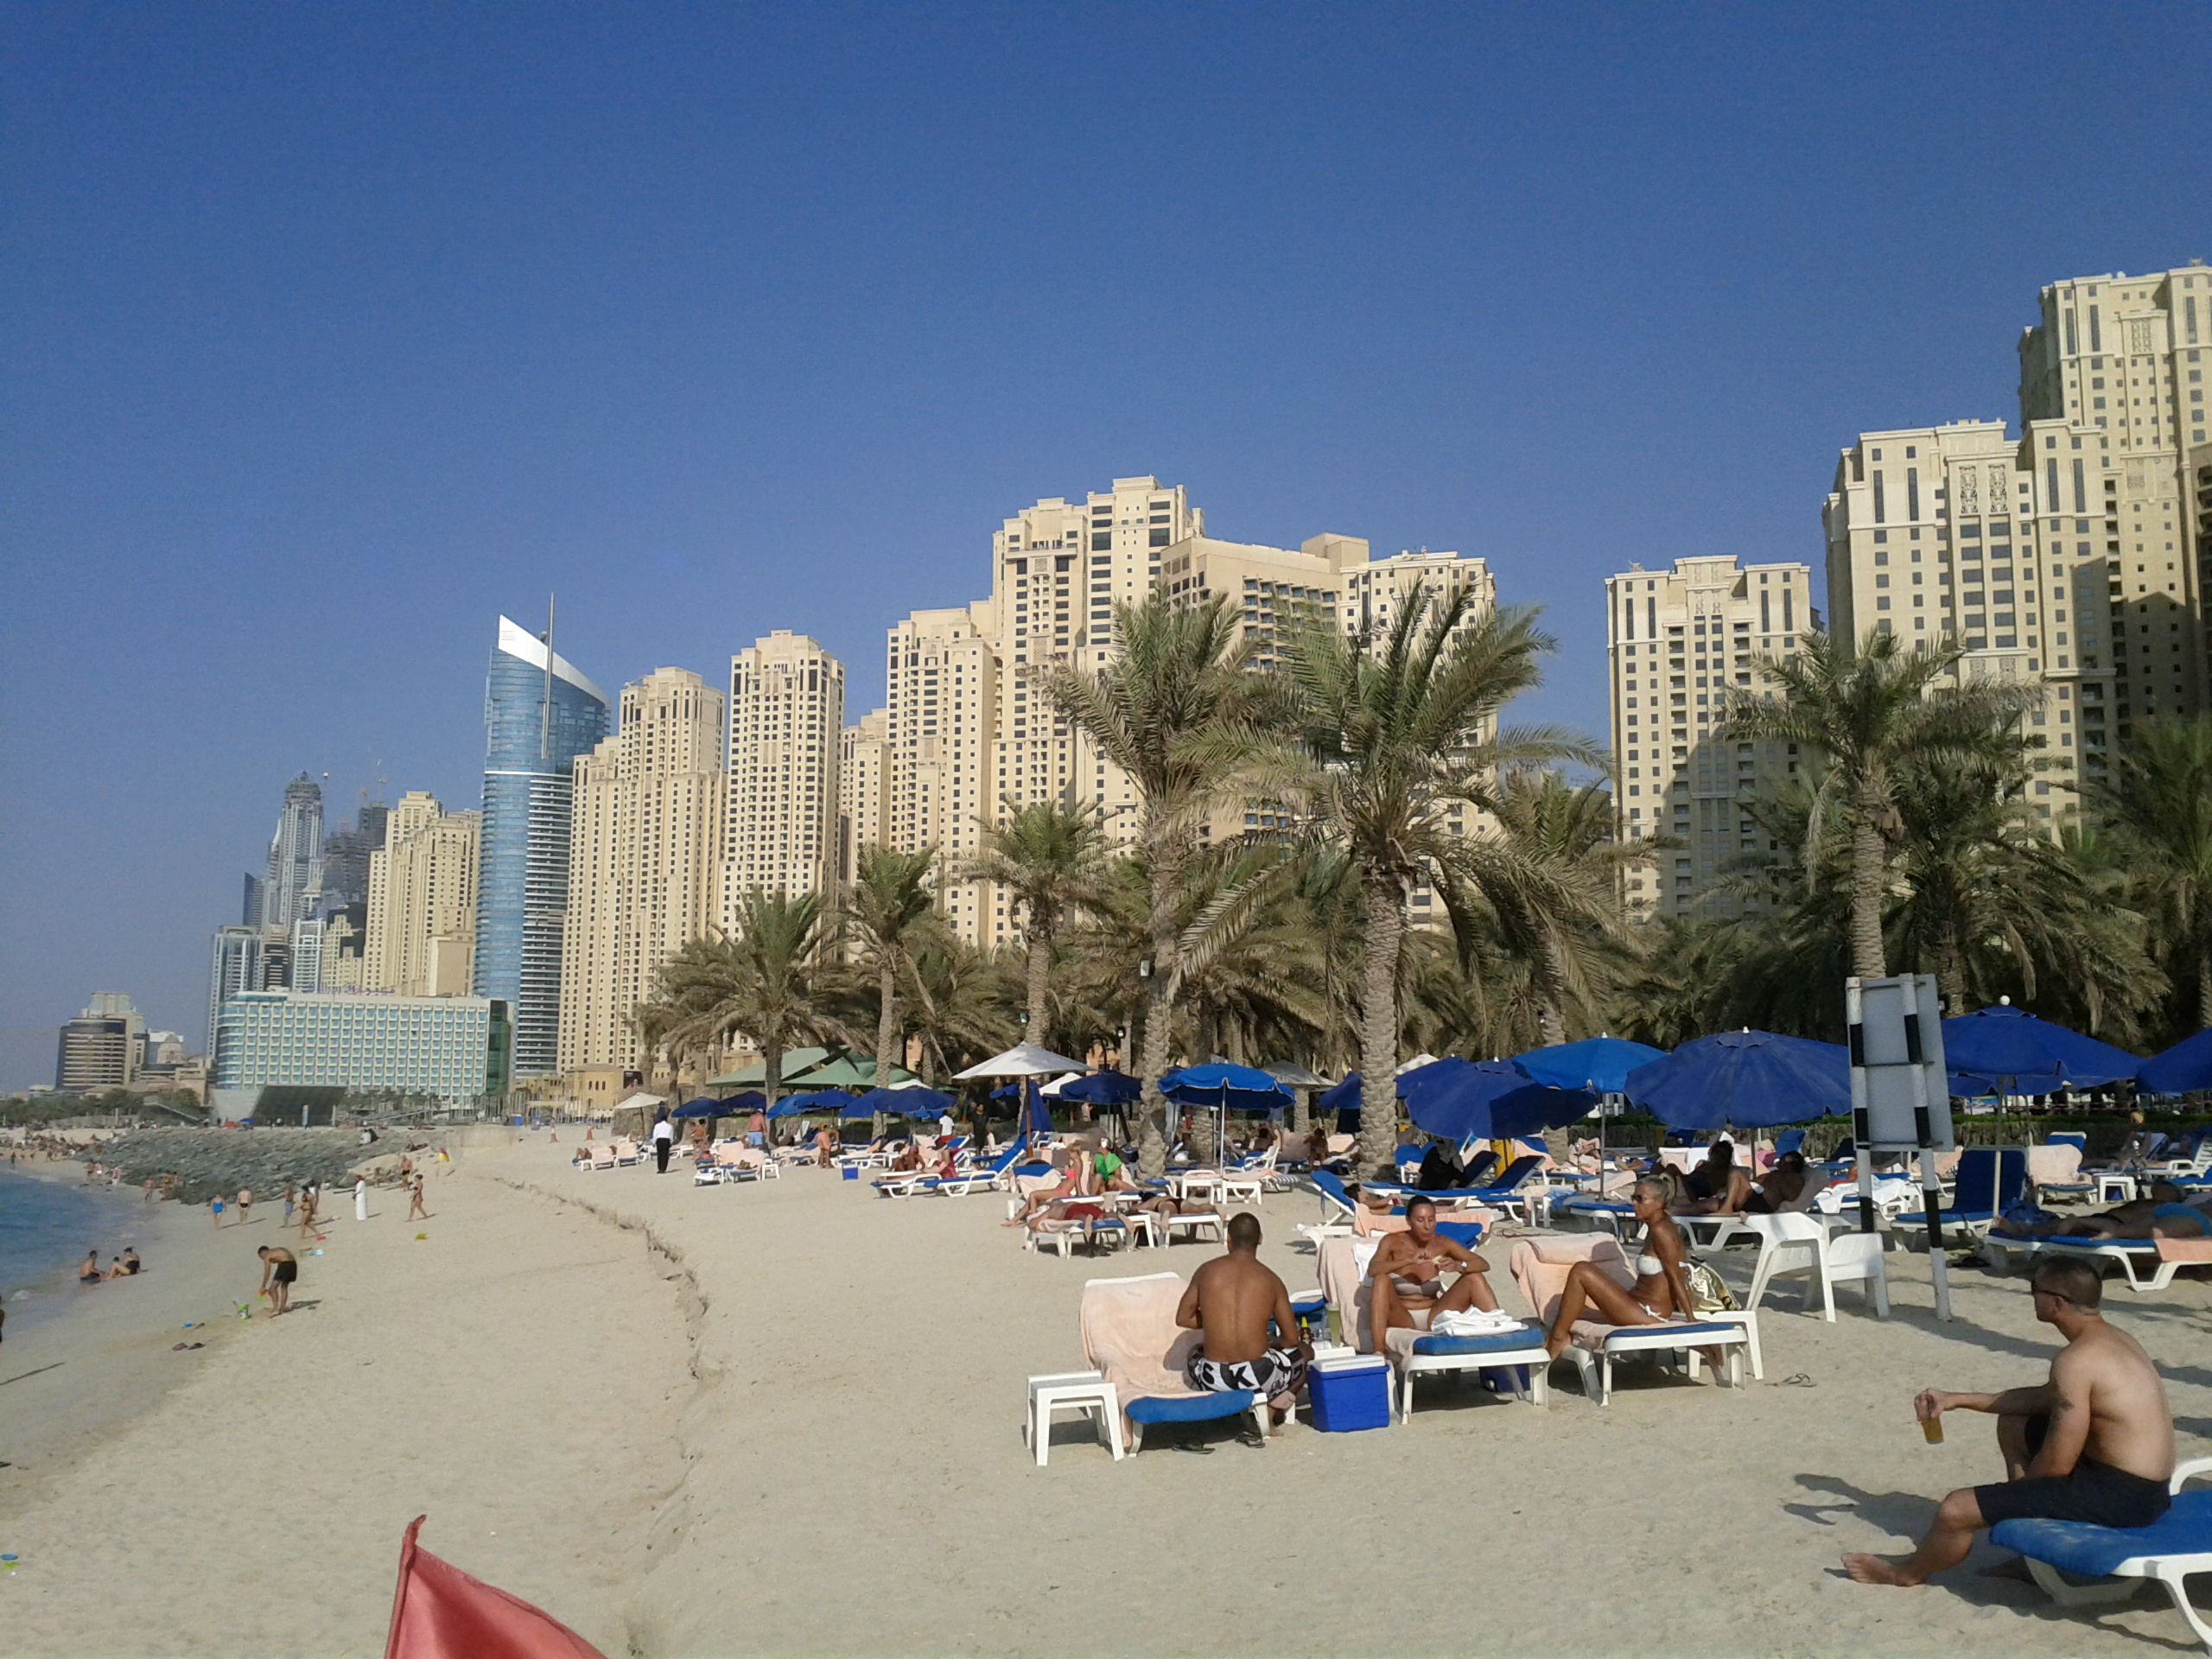 Sheraton jumeirah beach resort towers dubai uae for Dubai beach hotels